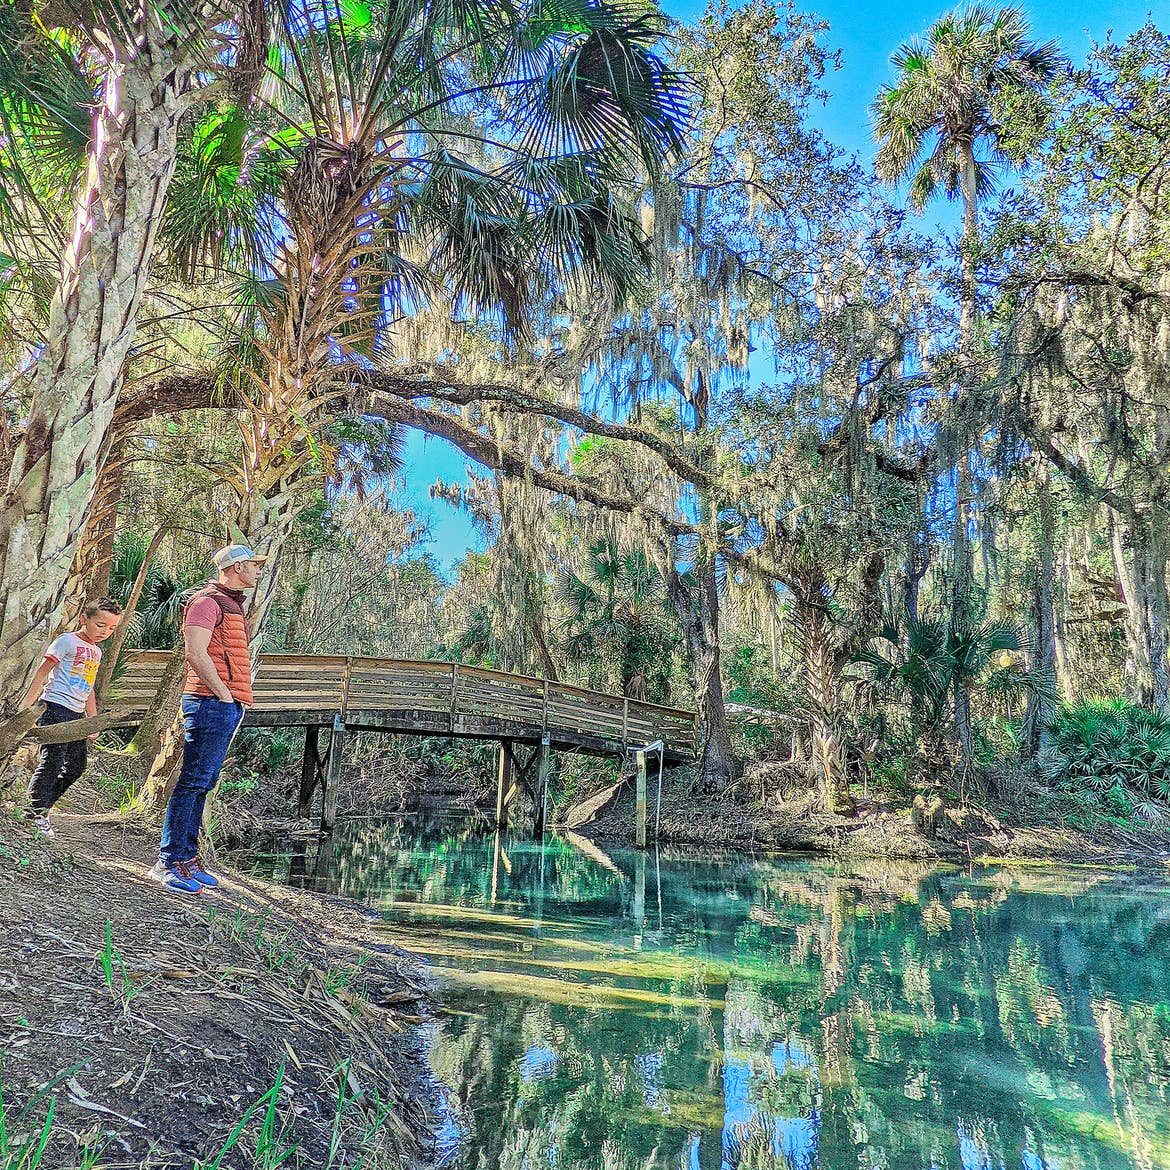 A man (right) and a young boy (left) stand near the edge of a creek and trail bridge at Gemini Springs Park in Florida.